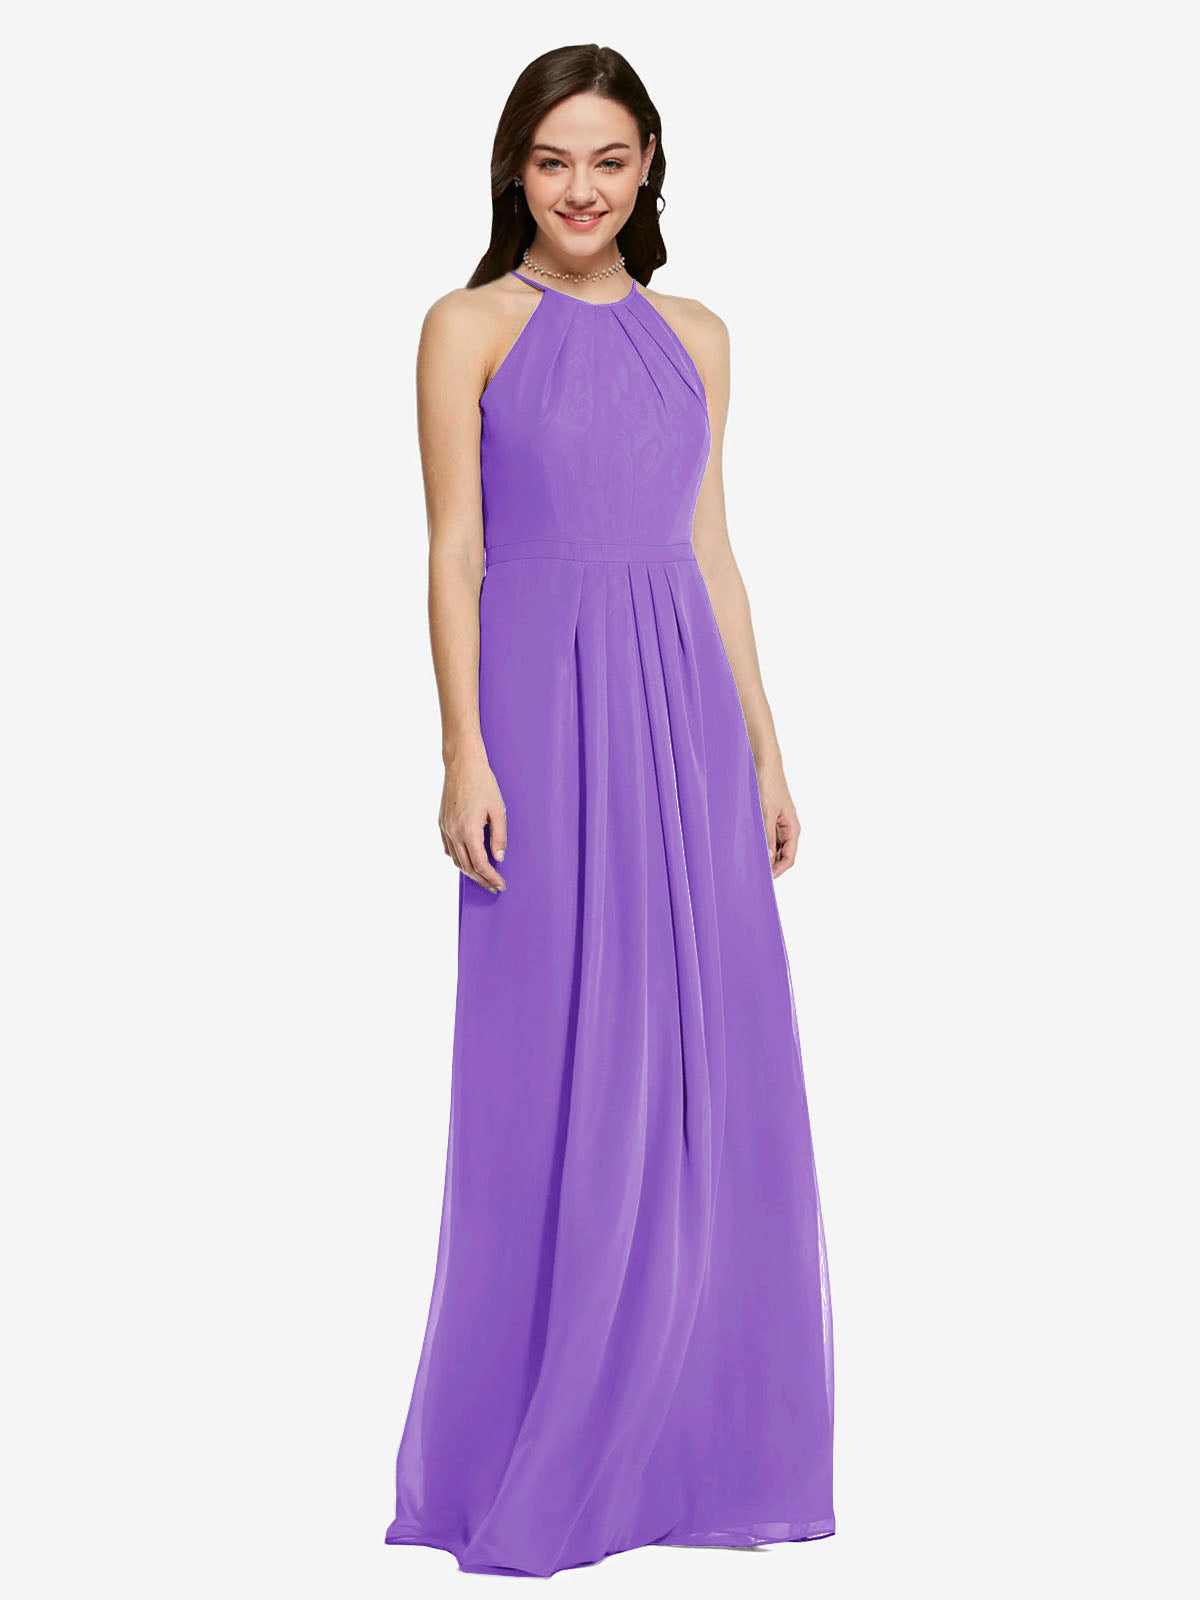 Long Sheath High Neck Halter Sleeveless Tahiti Chiffon Bridesmaid Dress Koloti